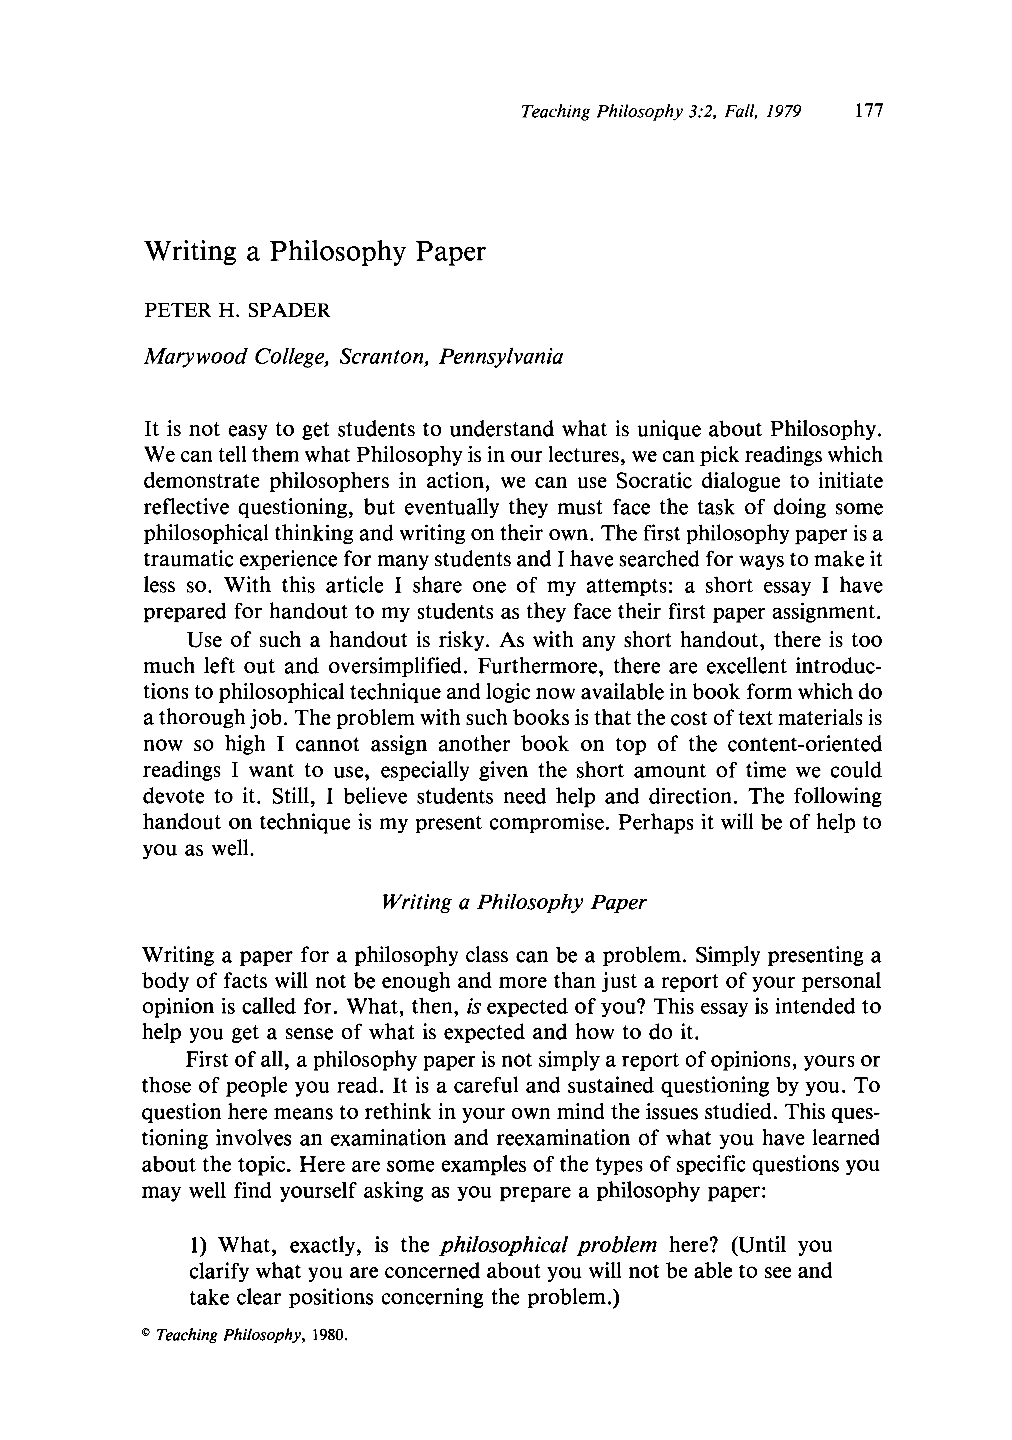 philosophical essay qualitative research essay qualitative  essay about philosophy essay education philosophy research paper a philosophical essay research paper academic servicea philosophical